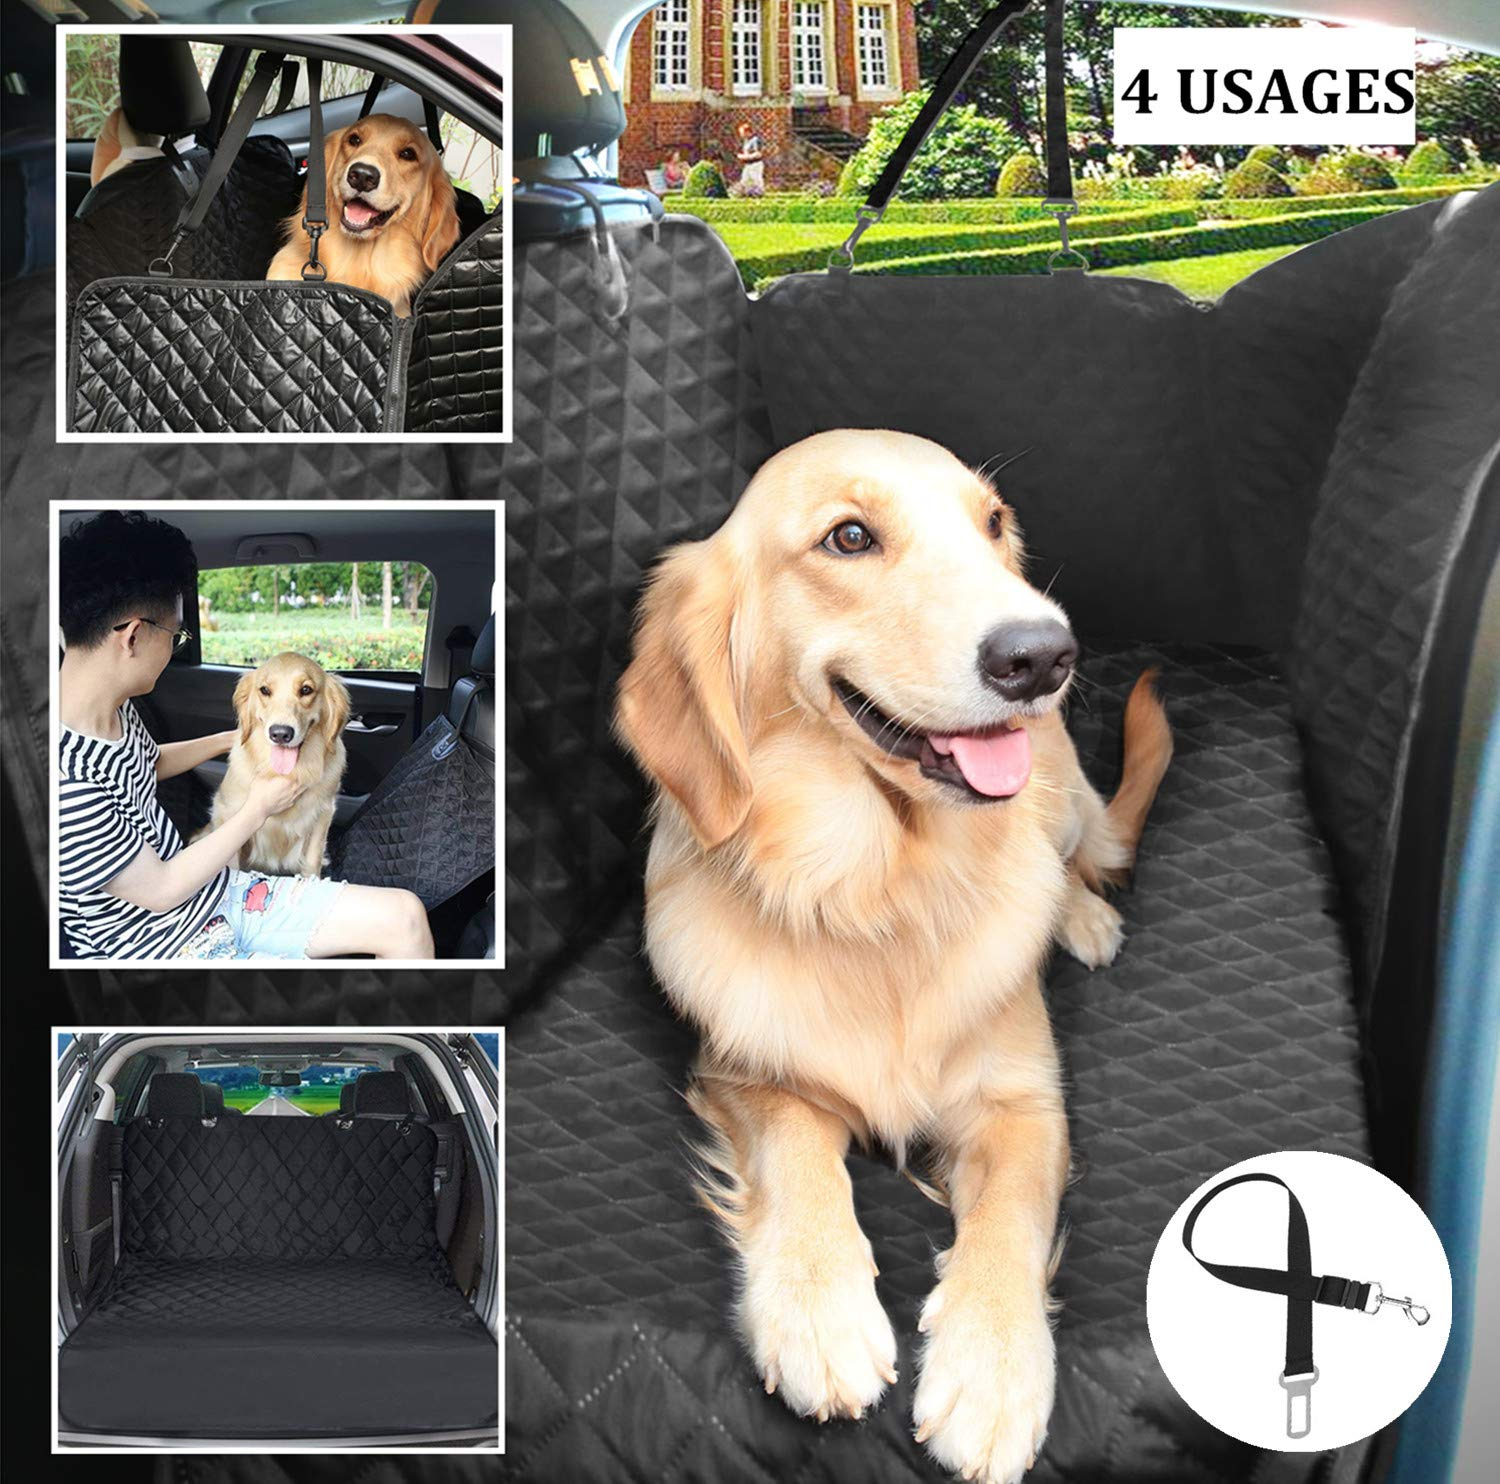 Dog Seat Cover for Back Seat Car Rear Seat Covers for Pet Travel Waterproof & Scratchproof & Nonslip Durable Soft Hammock with Eco-Friendly Bagand Dog Seat Belt for Cars Trucks SUV & Van Black